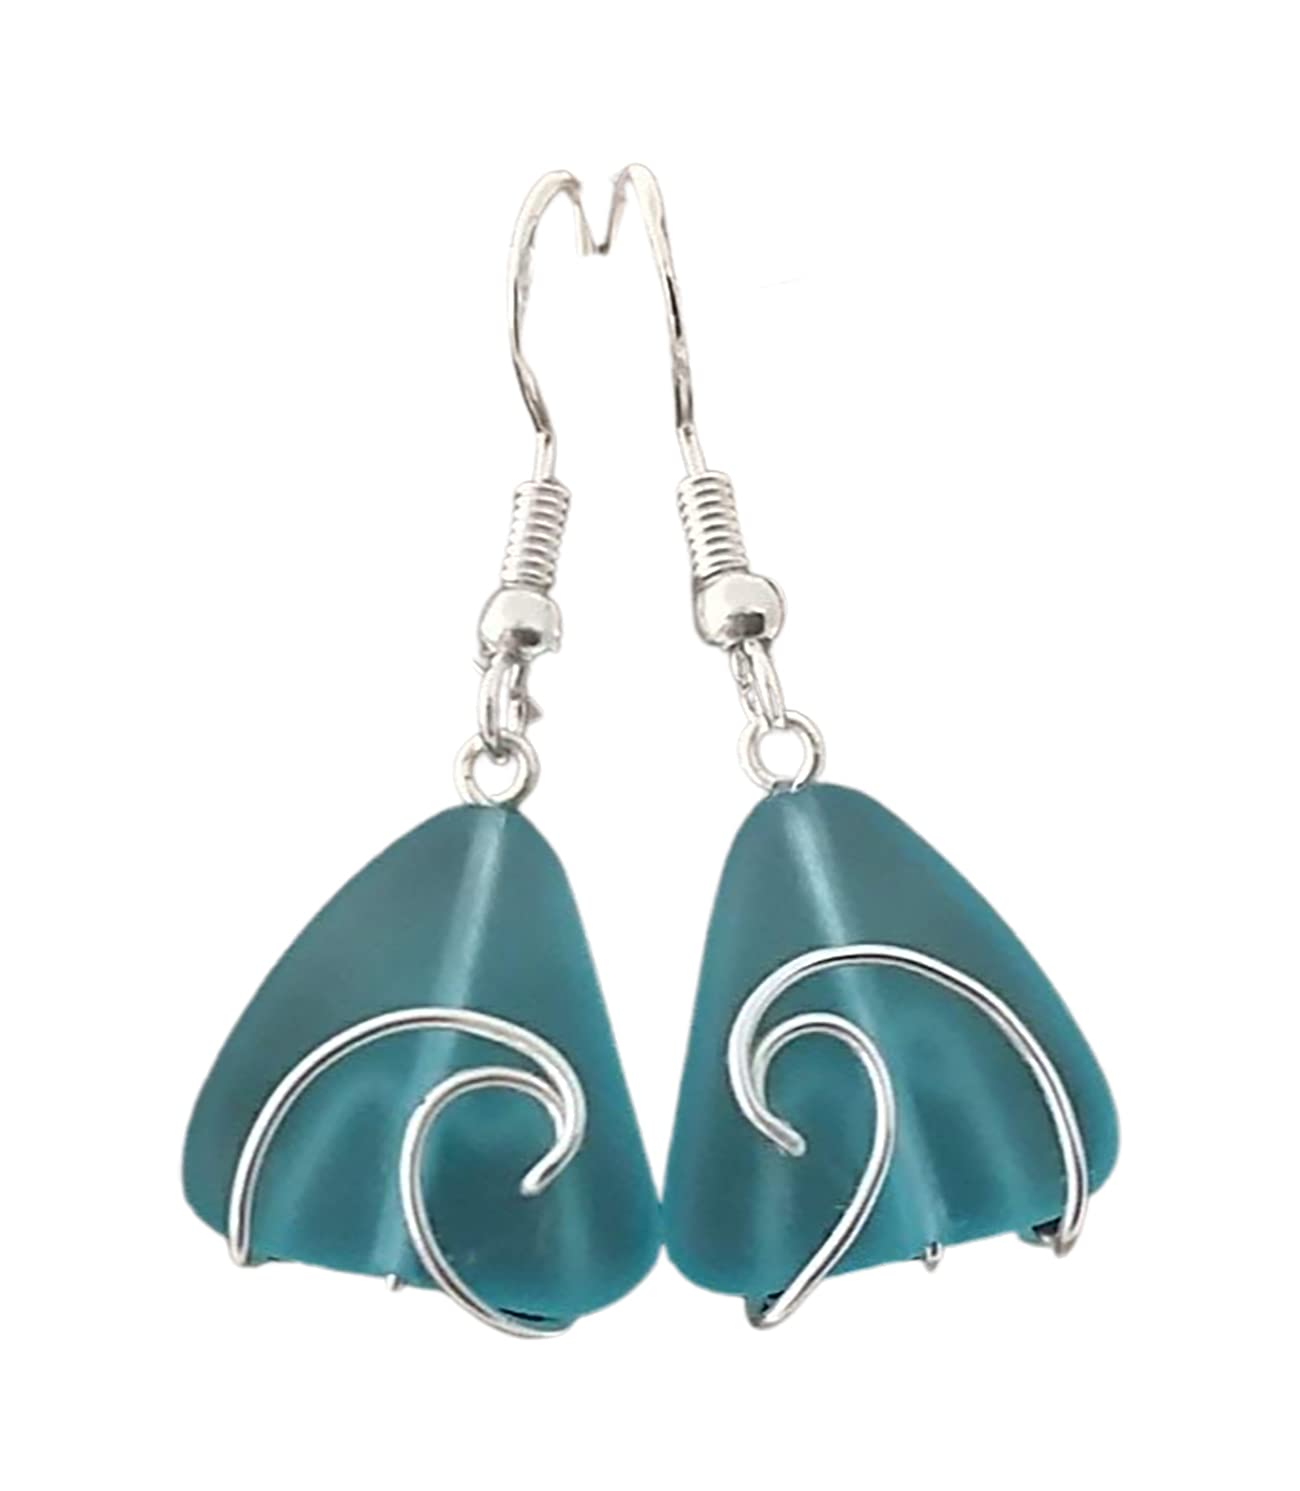 Handmade in Hawaii wire wrapped Inventory cleanup selling sale wave blue Selling rankings gi earrings glass sea